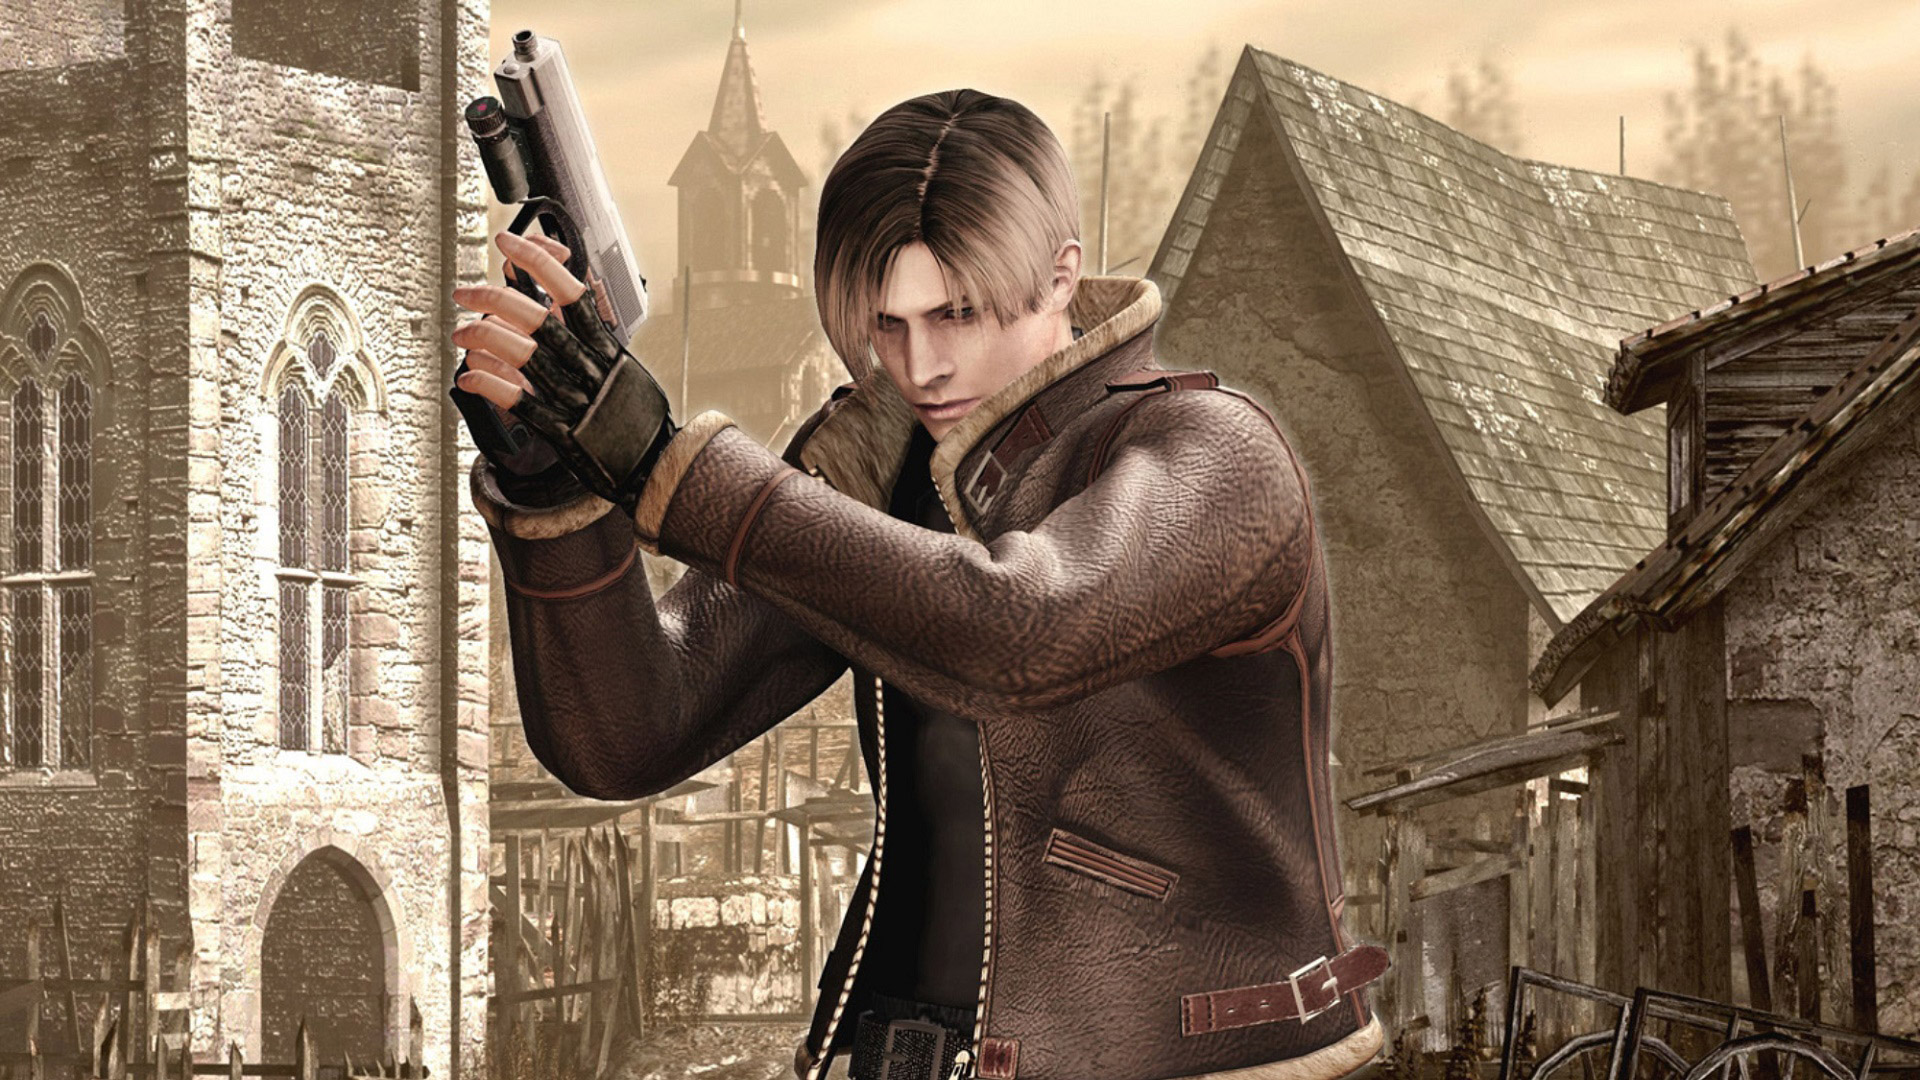 Free Resident Evil 4 Wallpaper in 1920x1080